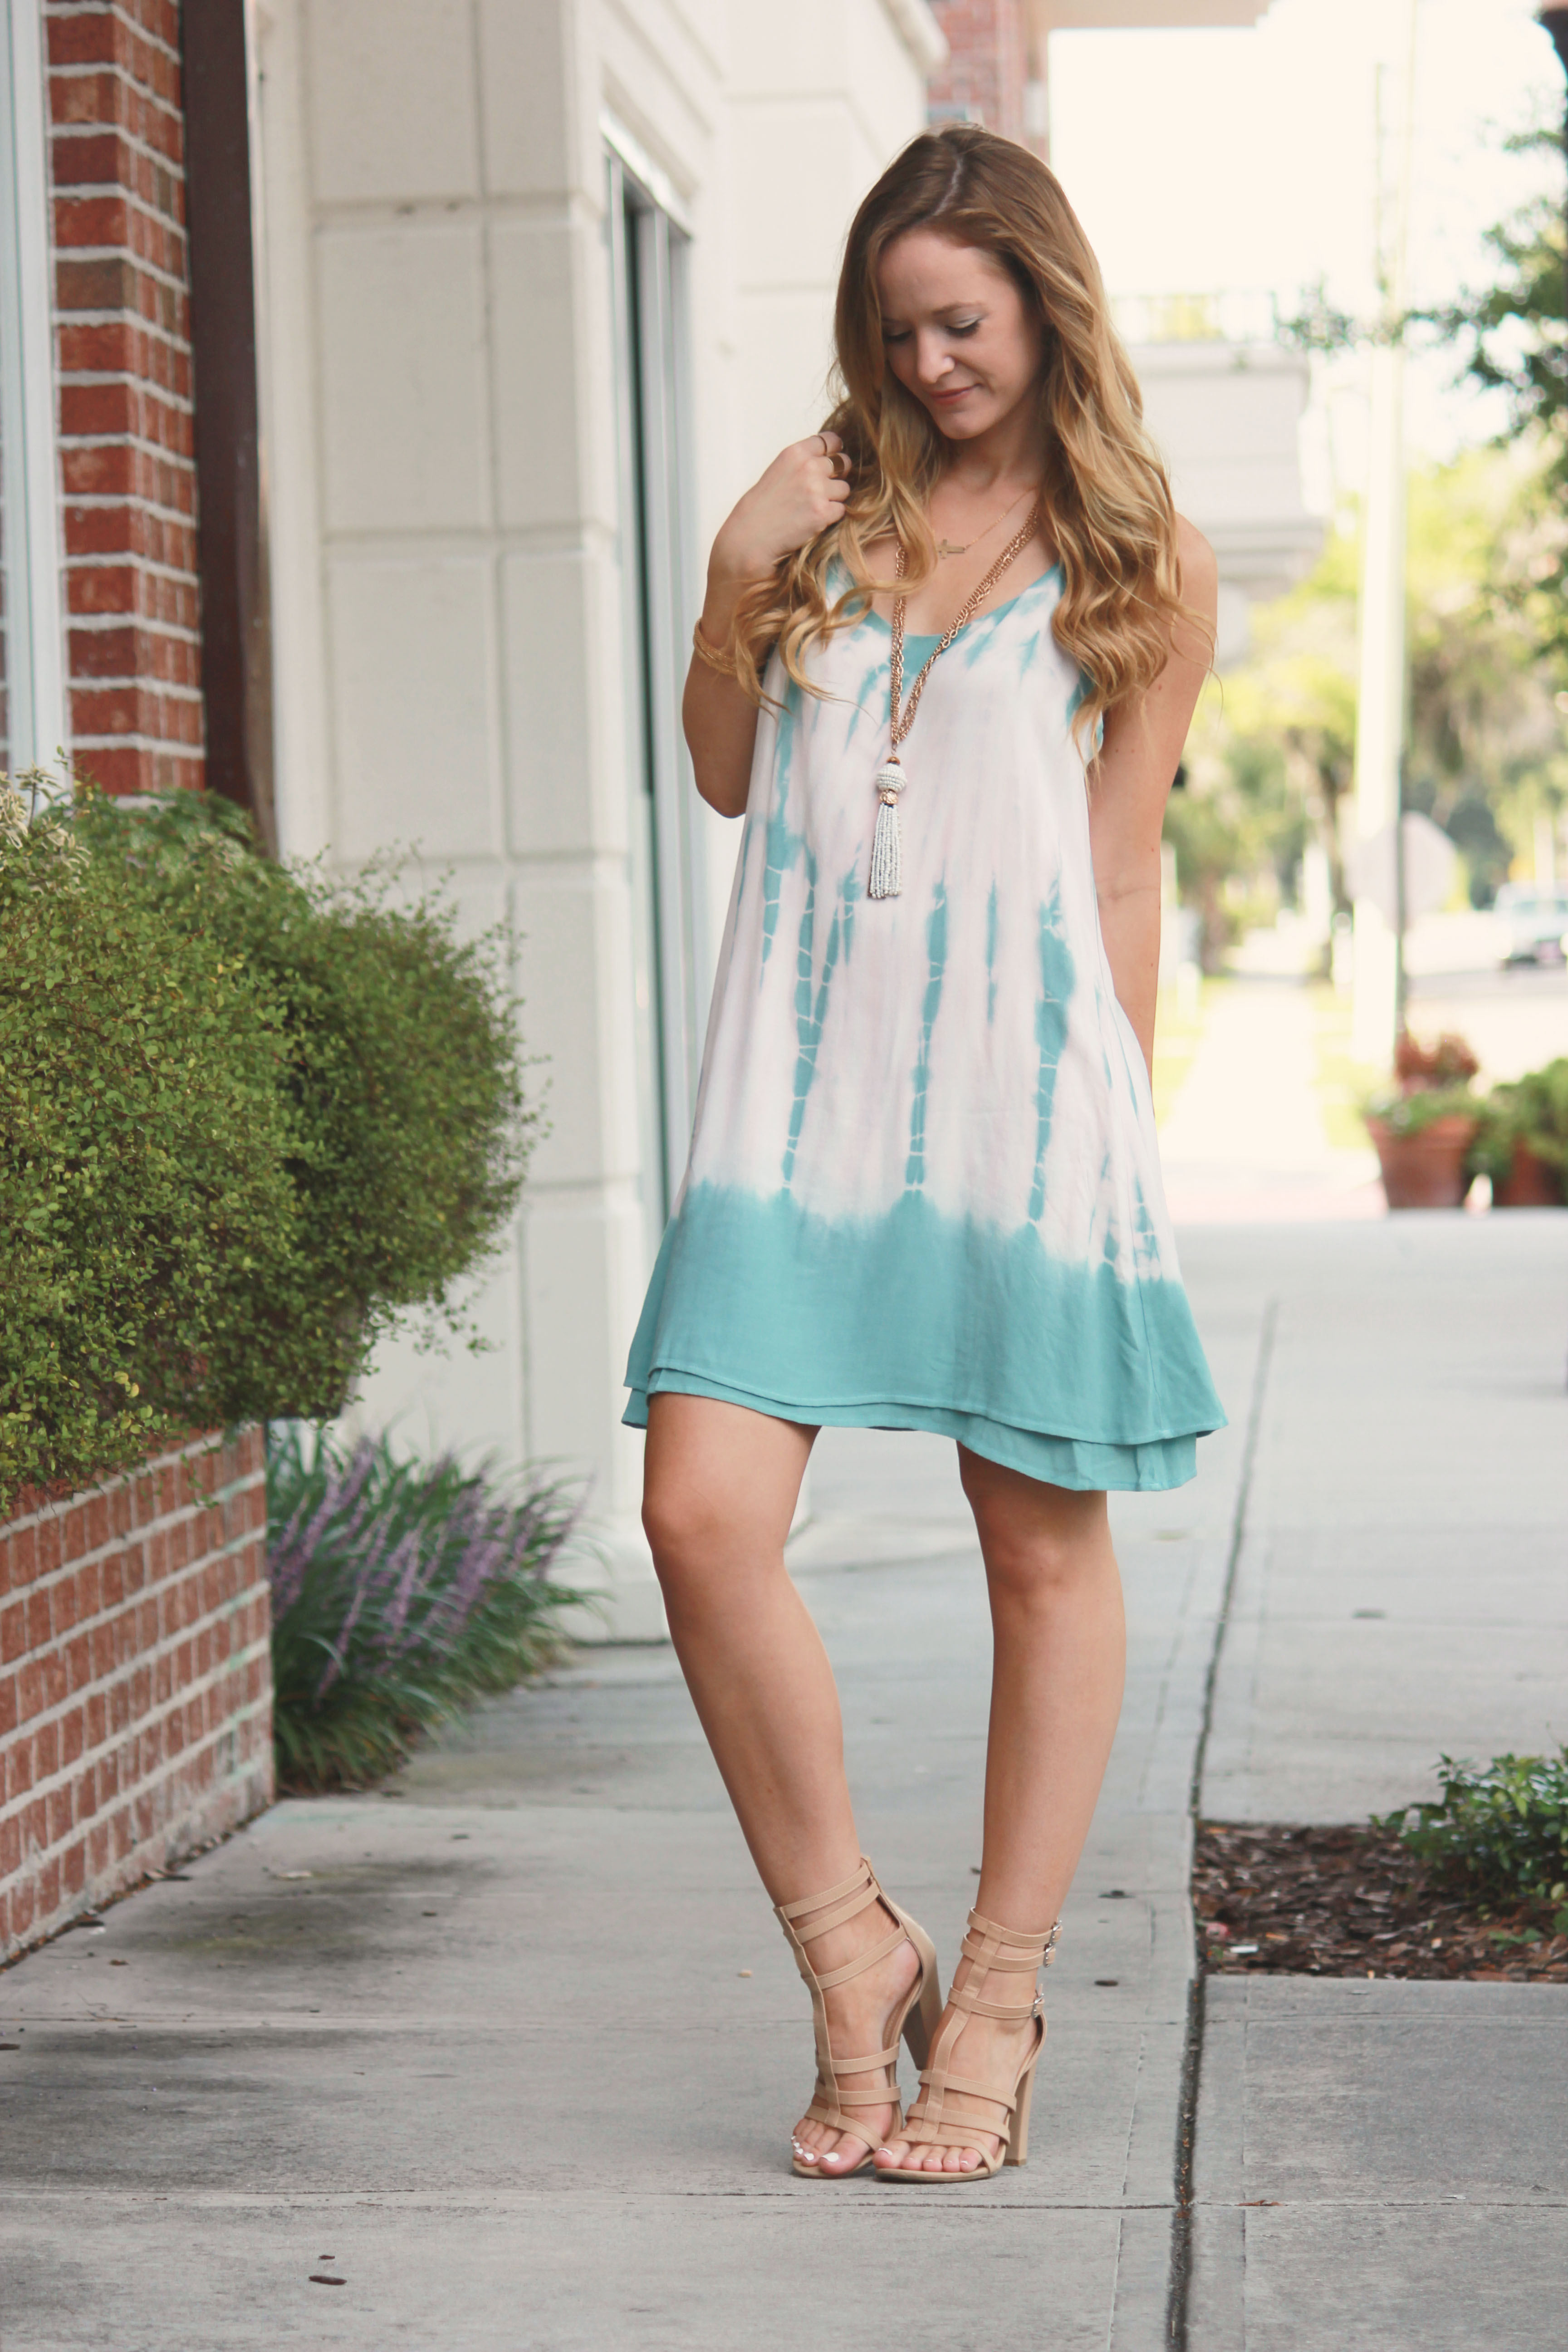 vinnie louise dress, tie dye dress, sophie and trey sandals, gladiator sandals, boho chic outfit, summer outfit